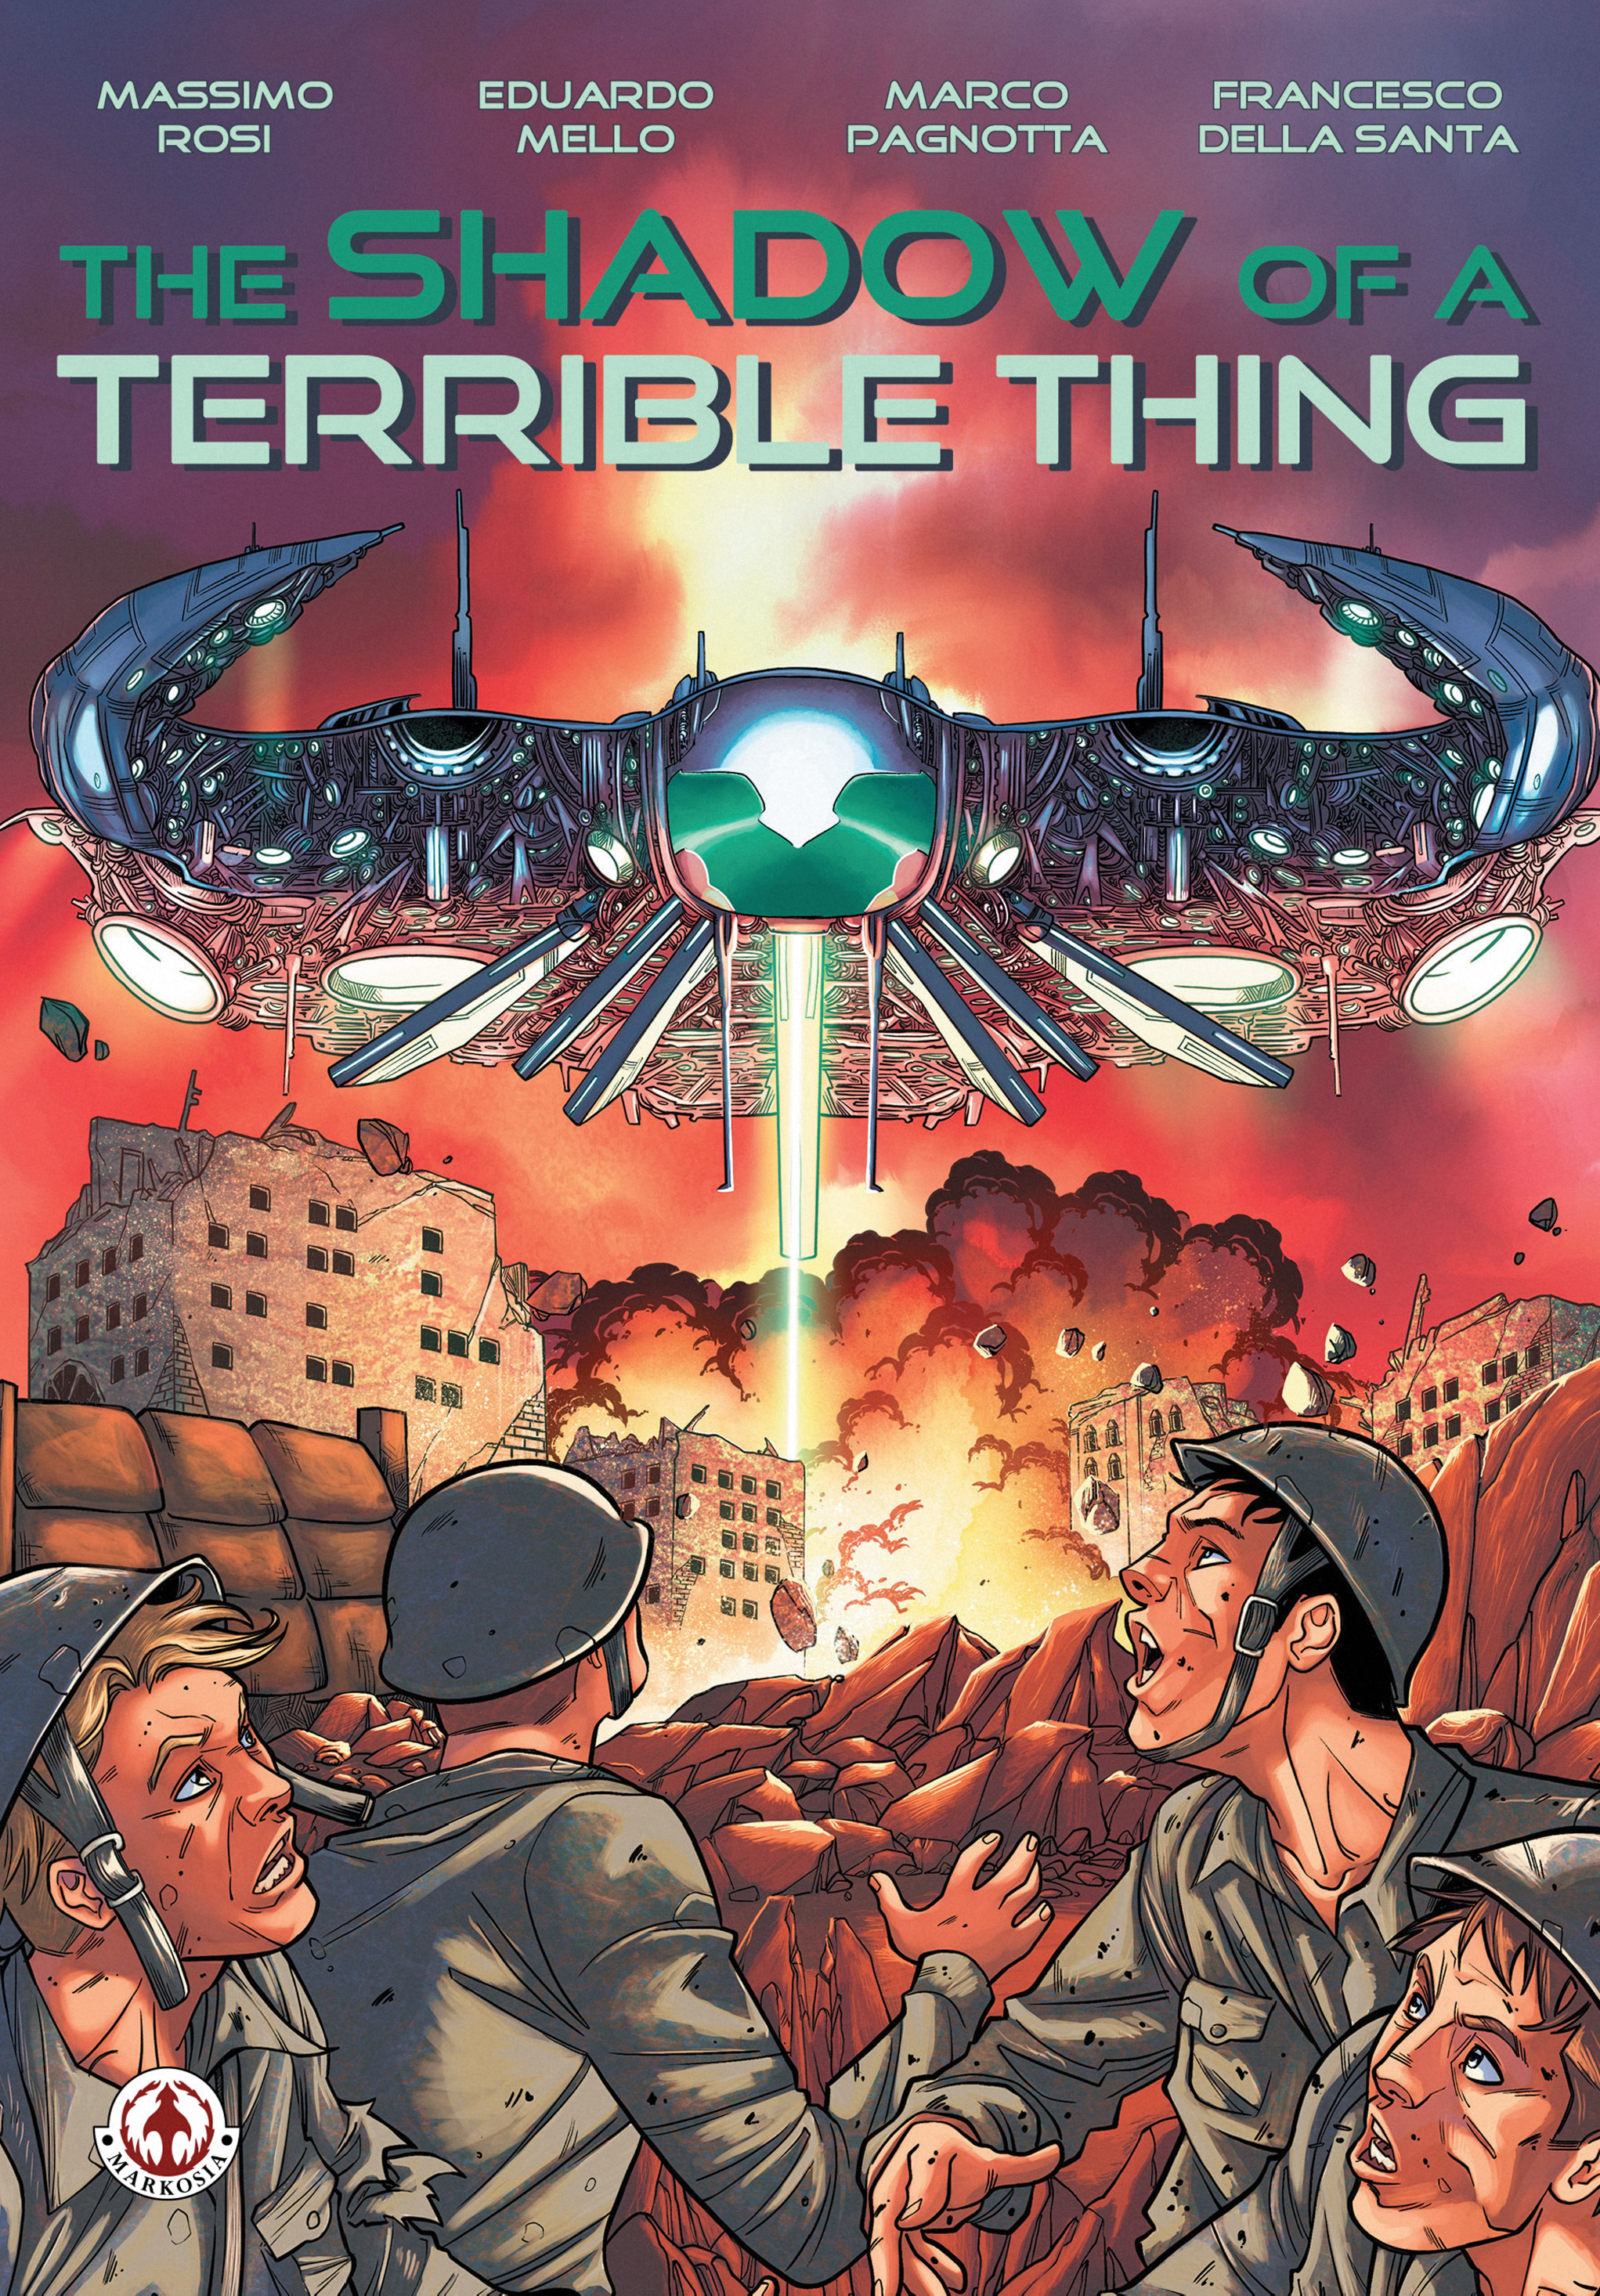 Read online The Shadow of a Terrible Thing comic -  Issue # TPB - 1